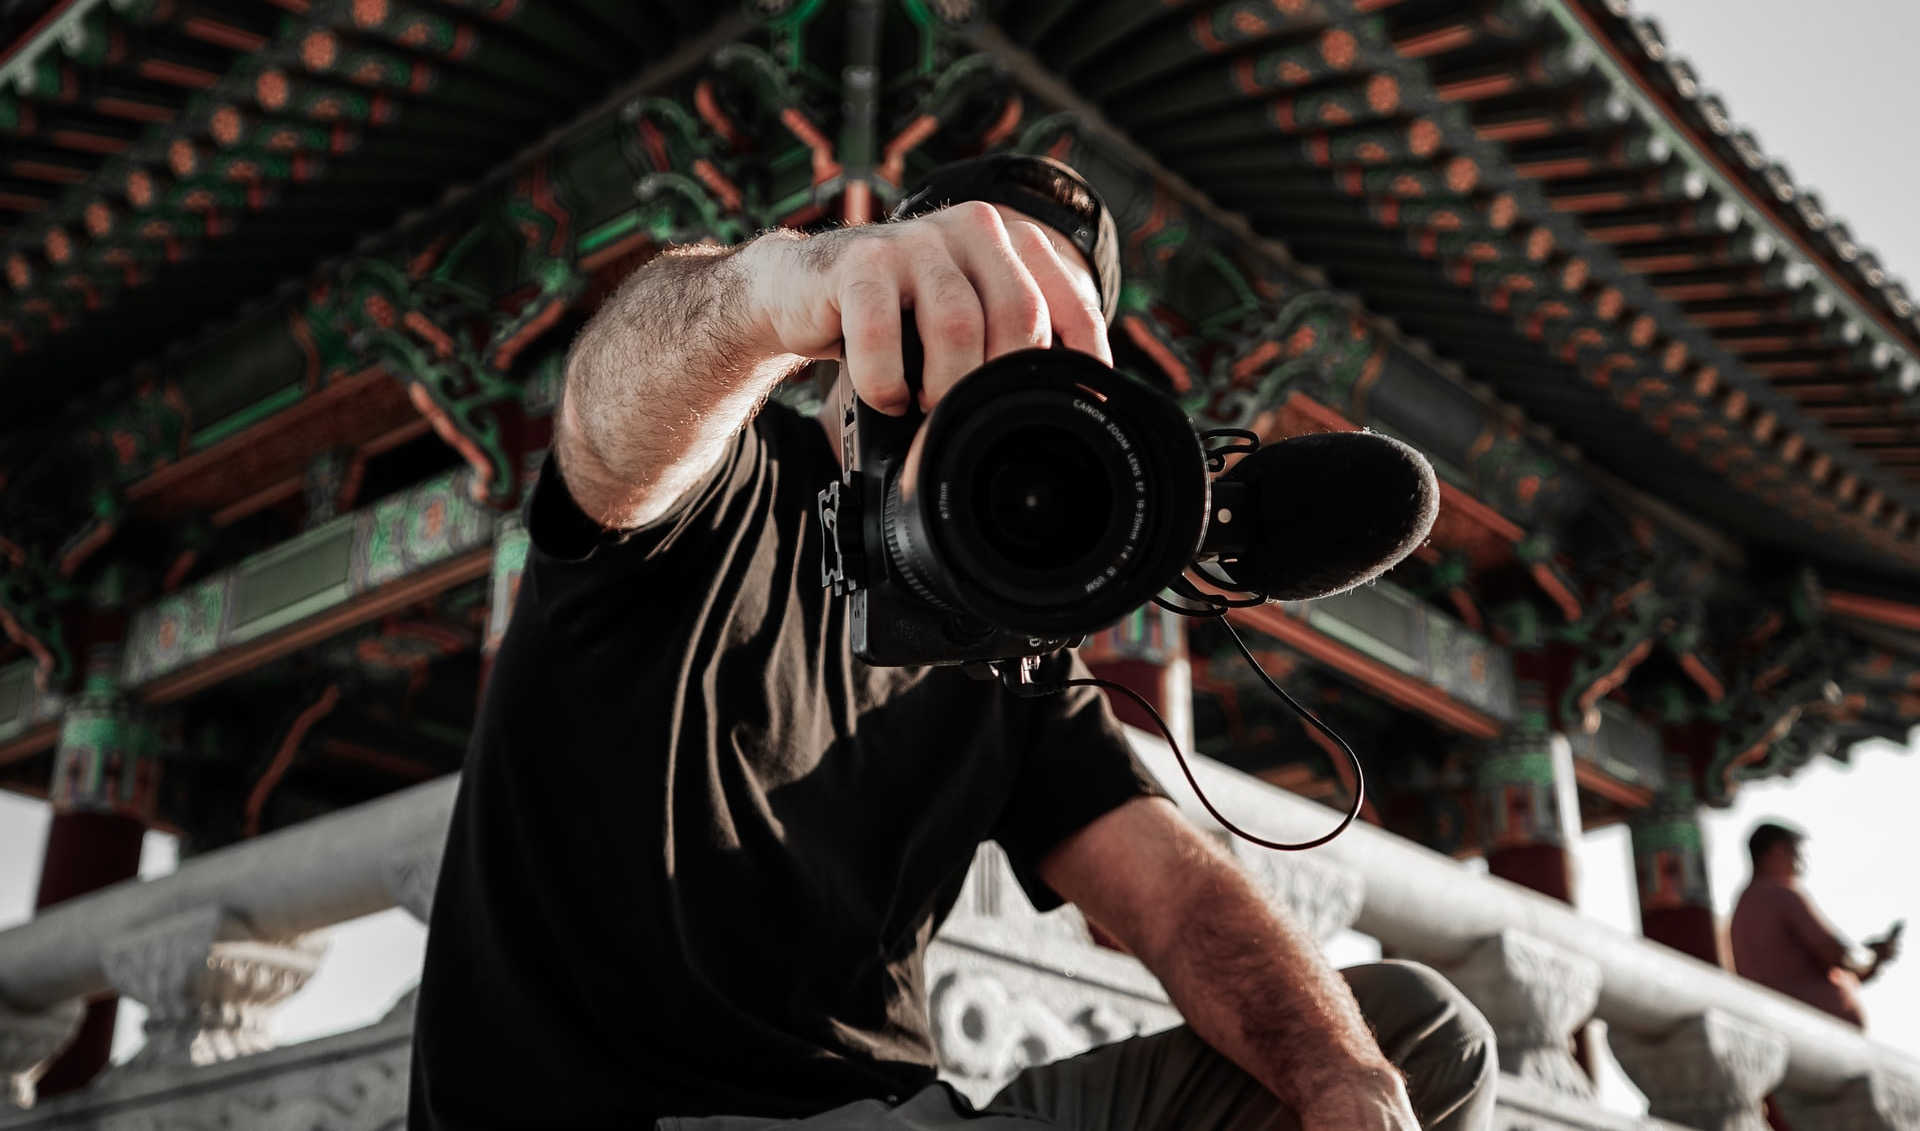 vlogger holds his dslr camera to the viewer, crouched in front of an oriental structure